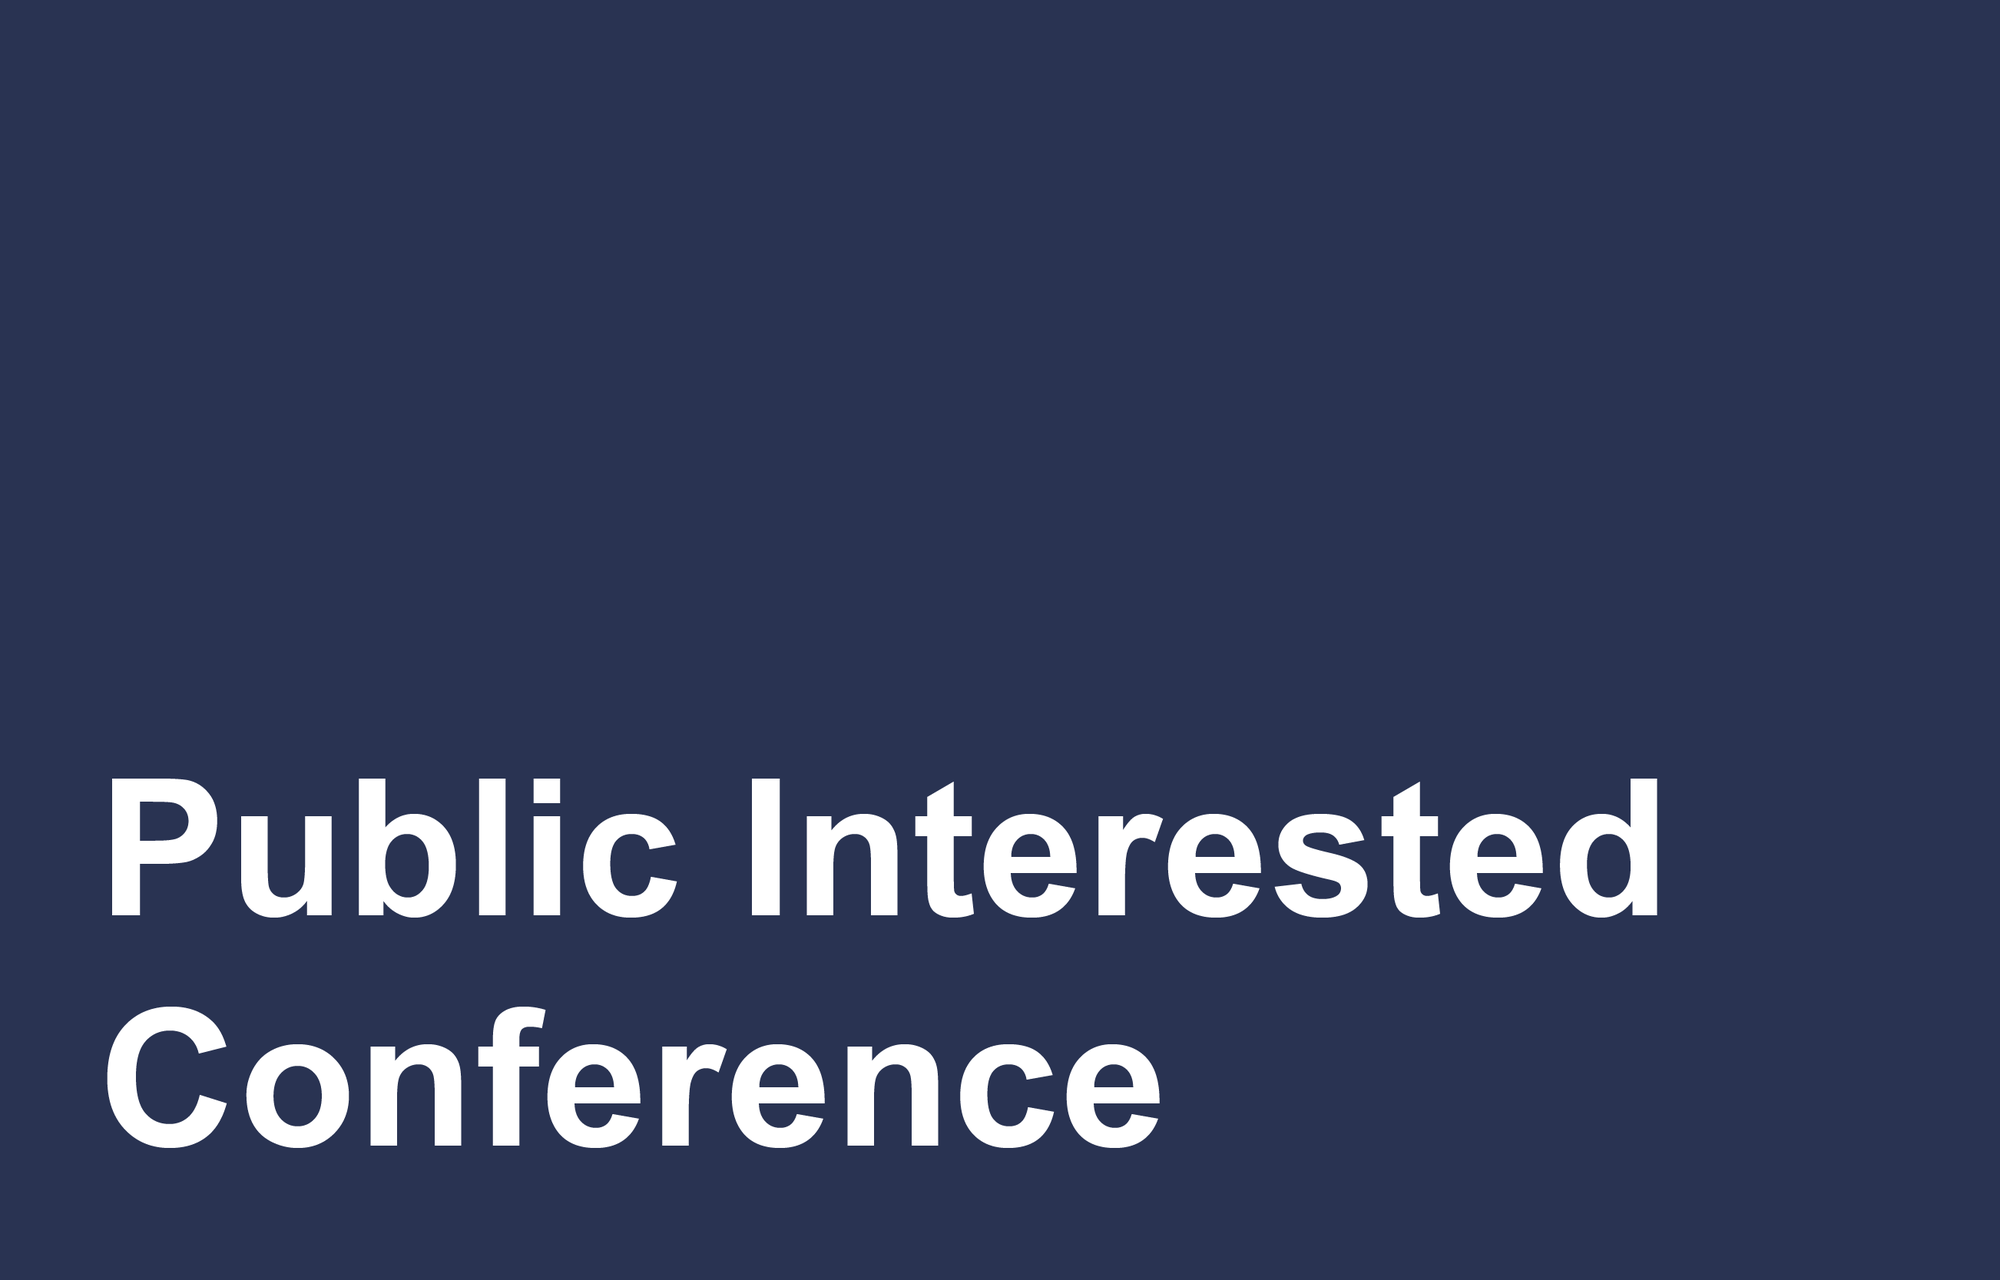 Public Interested? Conference